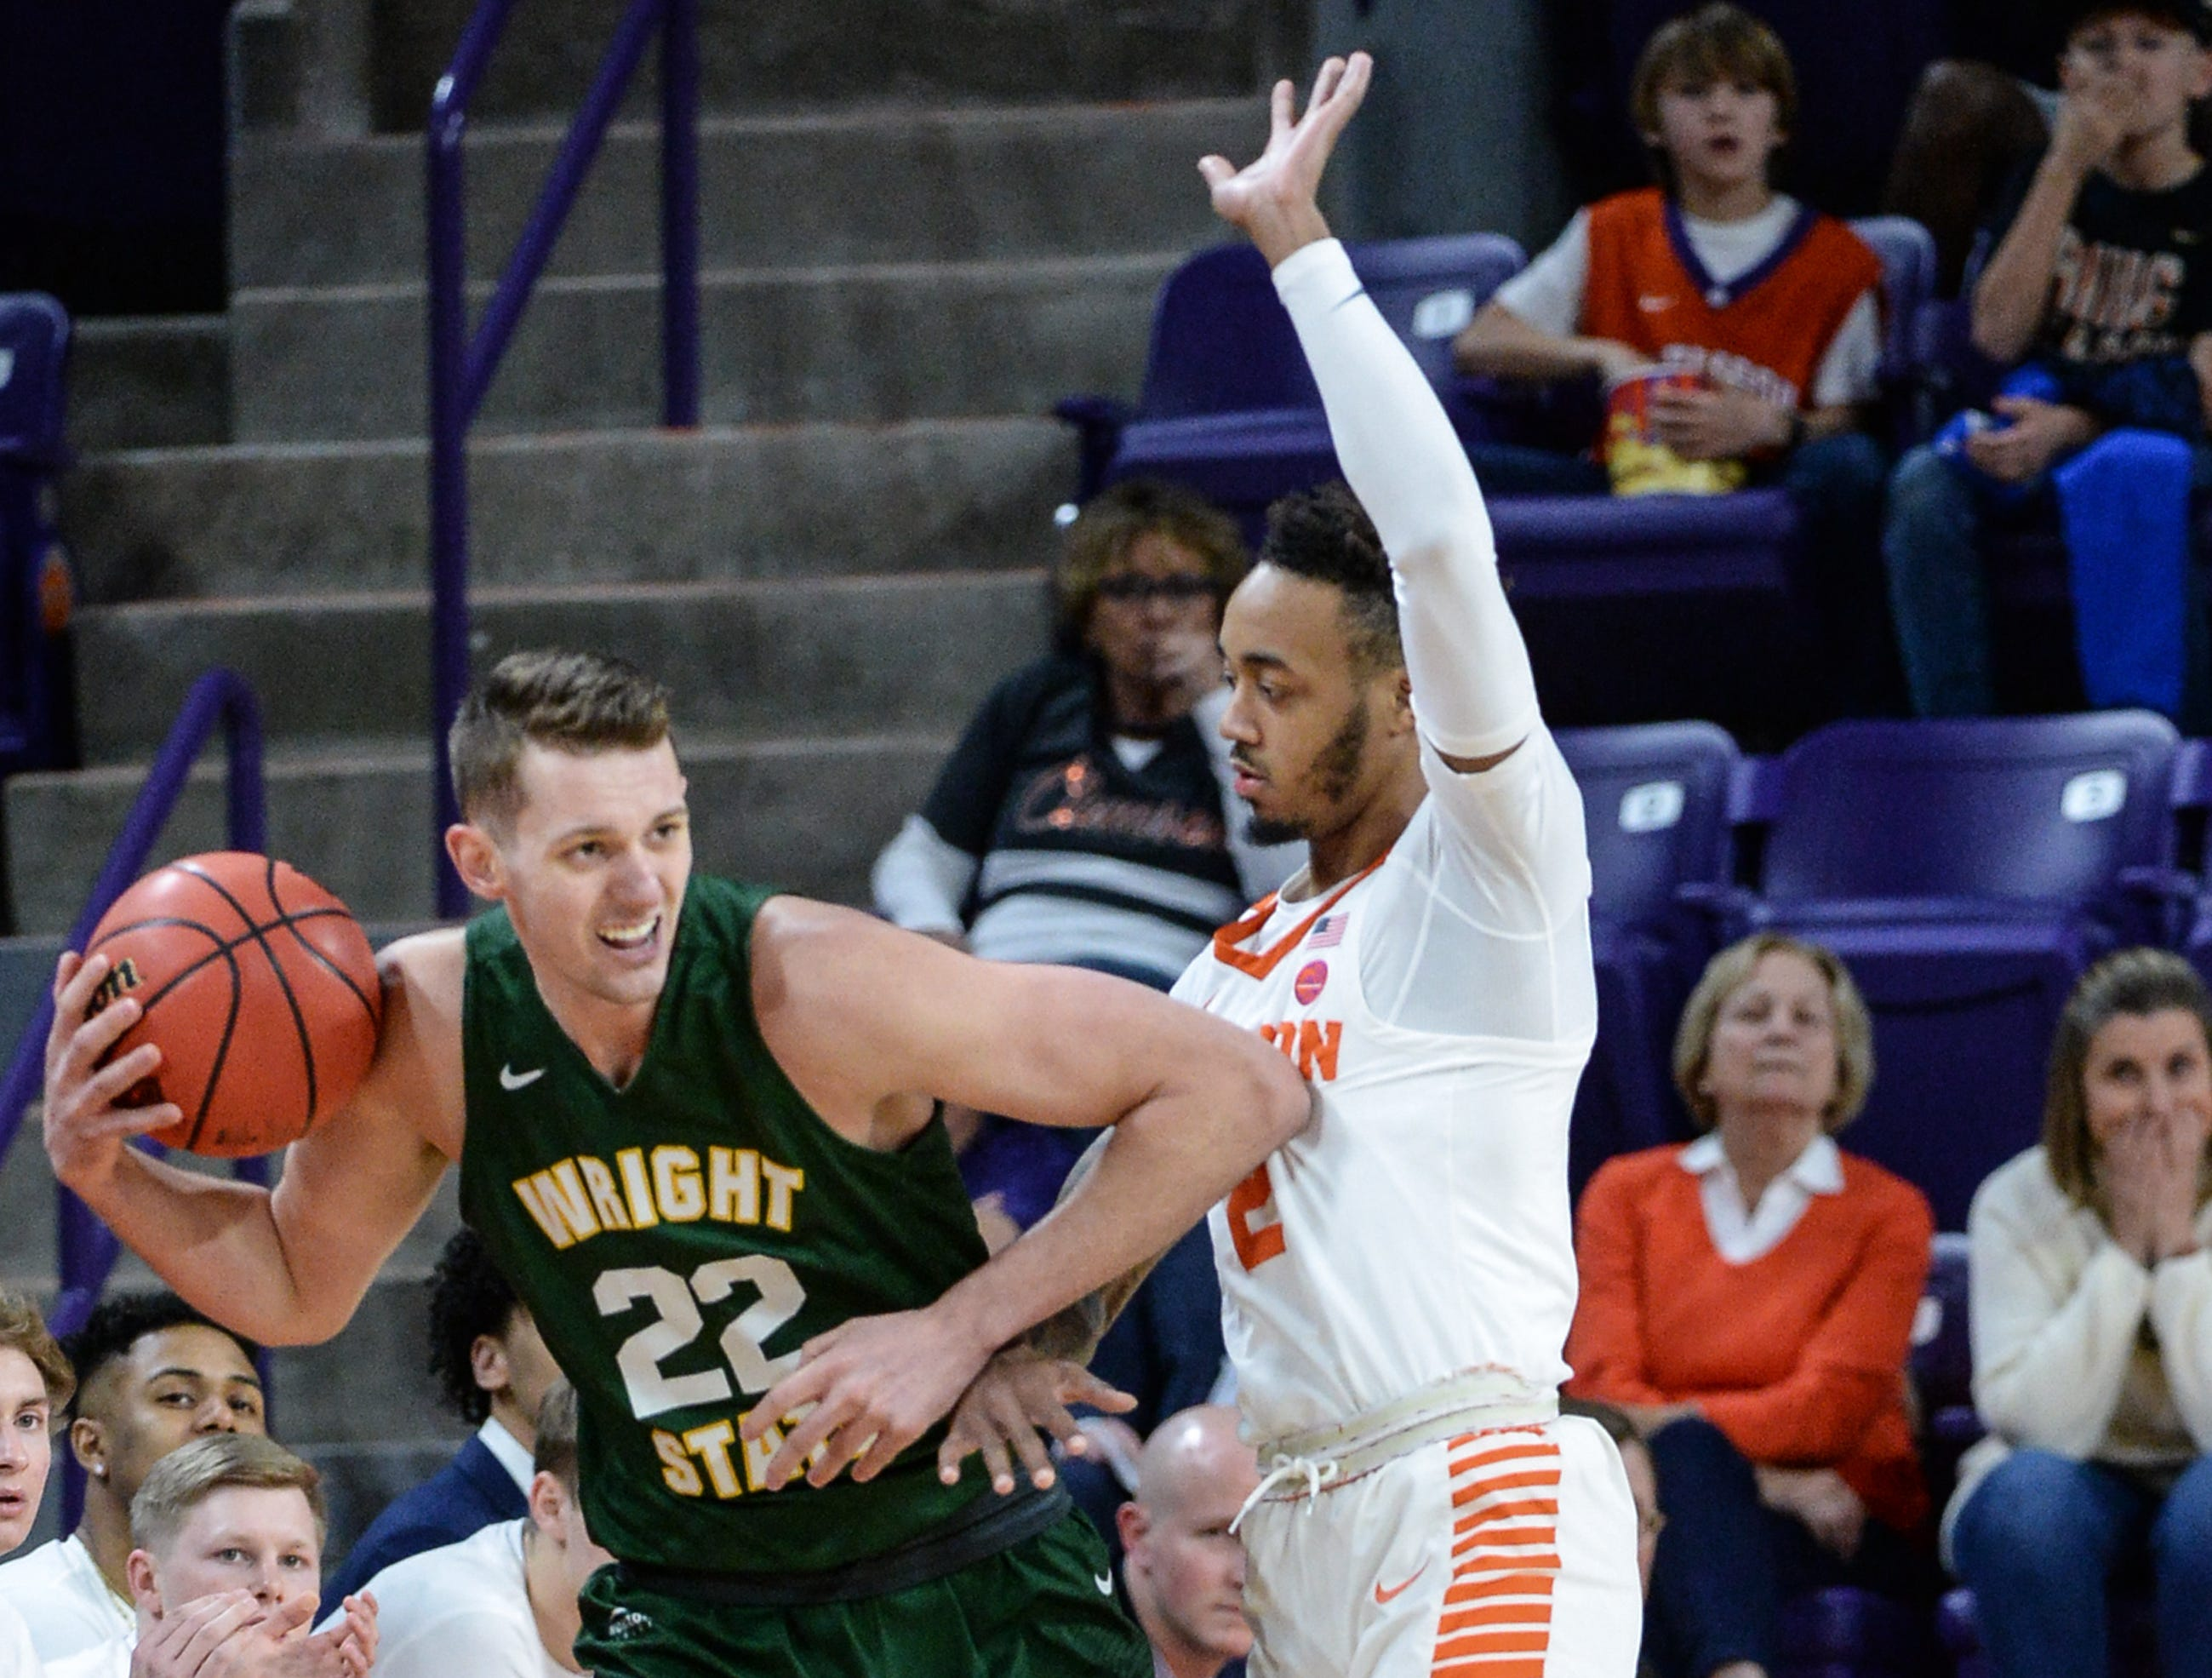 Clemson guard Marcquise Reed (2) guards Wright State center Parker Ernsthausen(22) during the first half of the NIT at Littlejohn Coliseum in Clemson Tuesday, March 19, 2019.